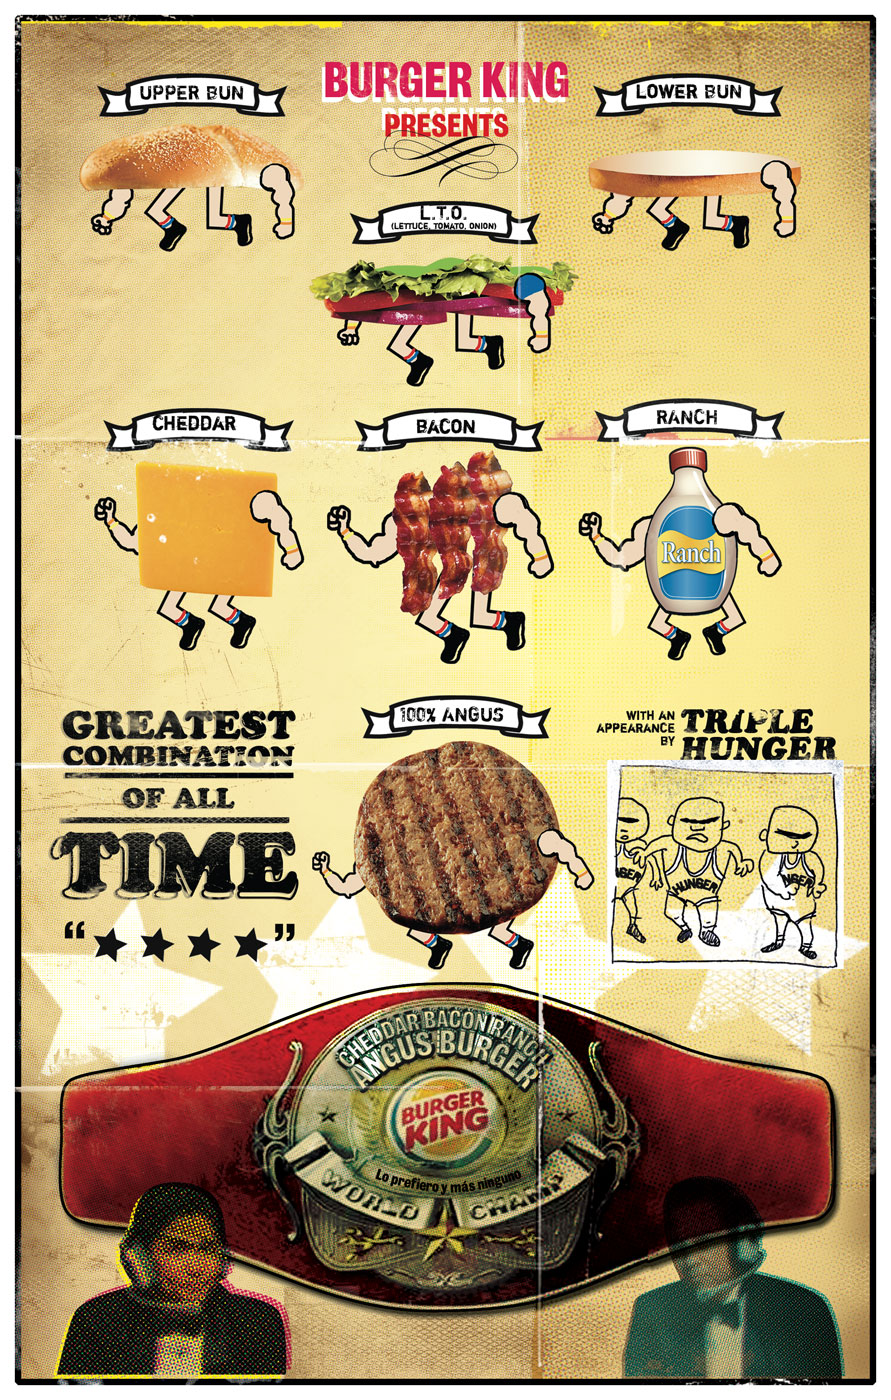 Burger King Cheddar Bacon Ranch Wrestling Poster